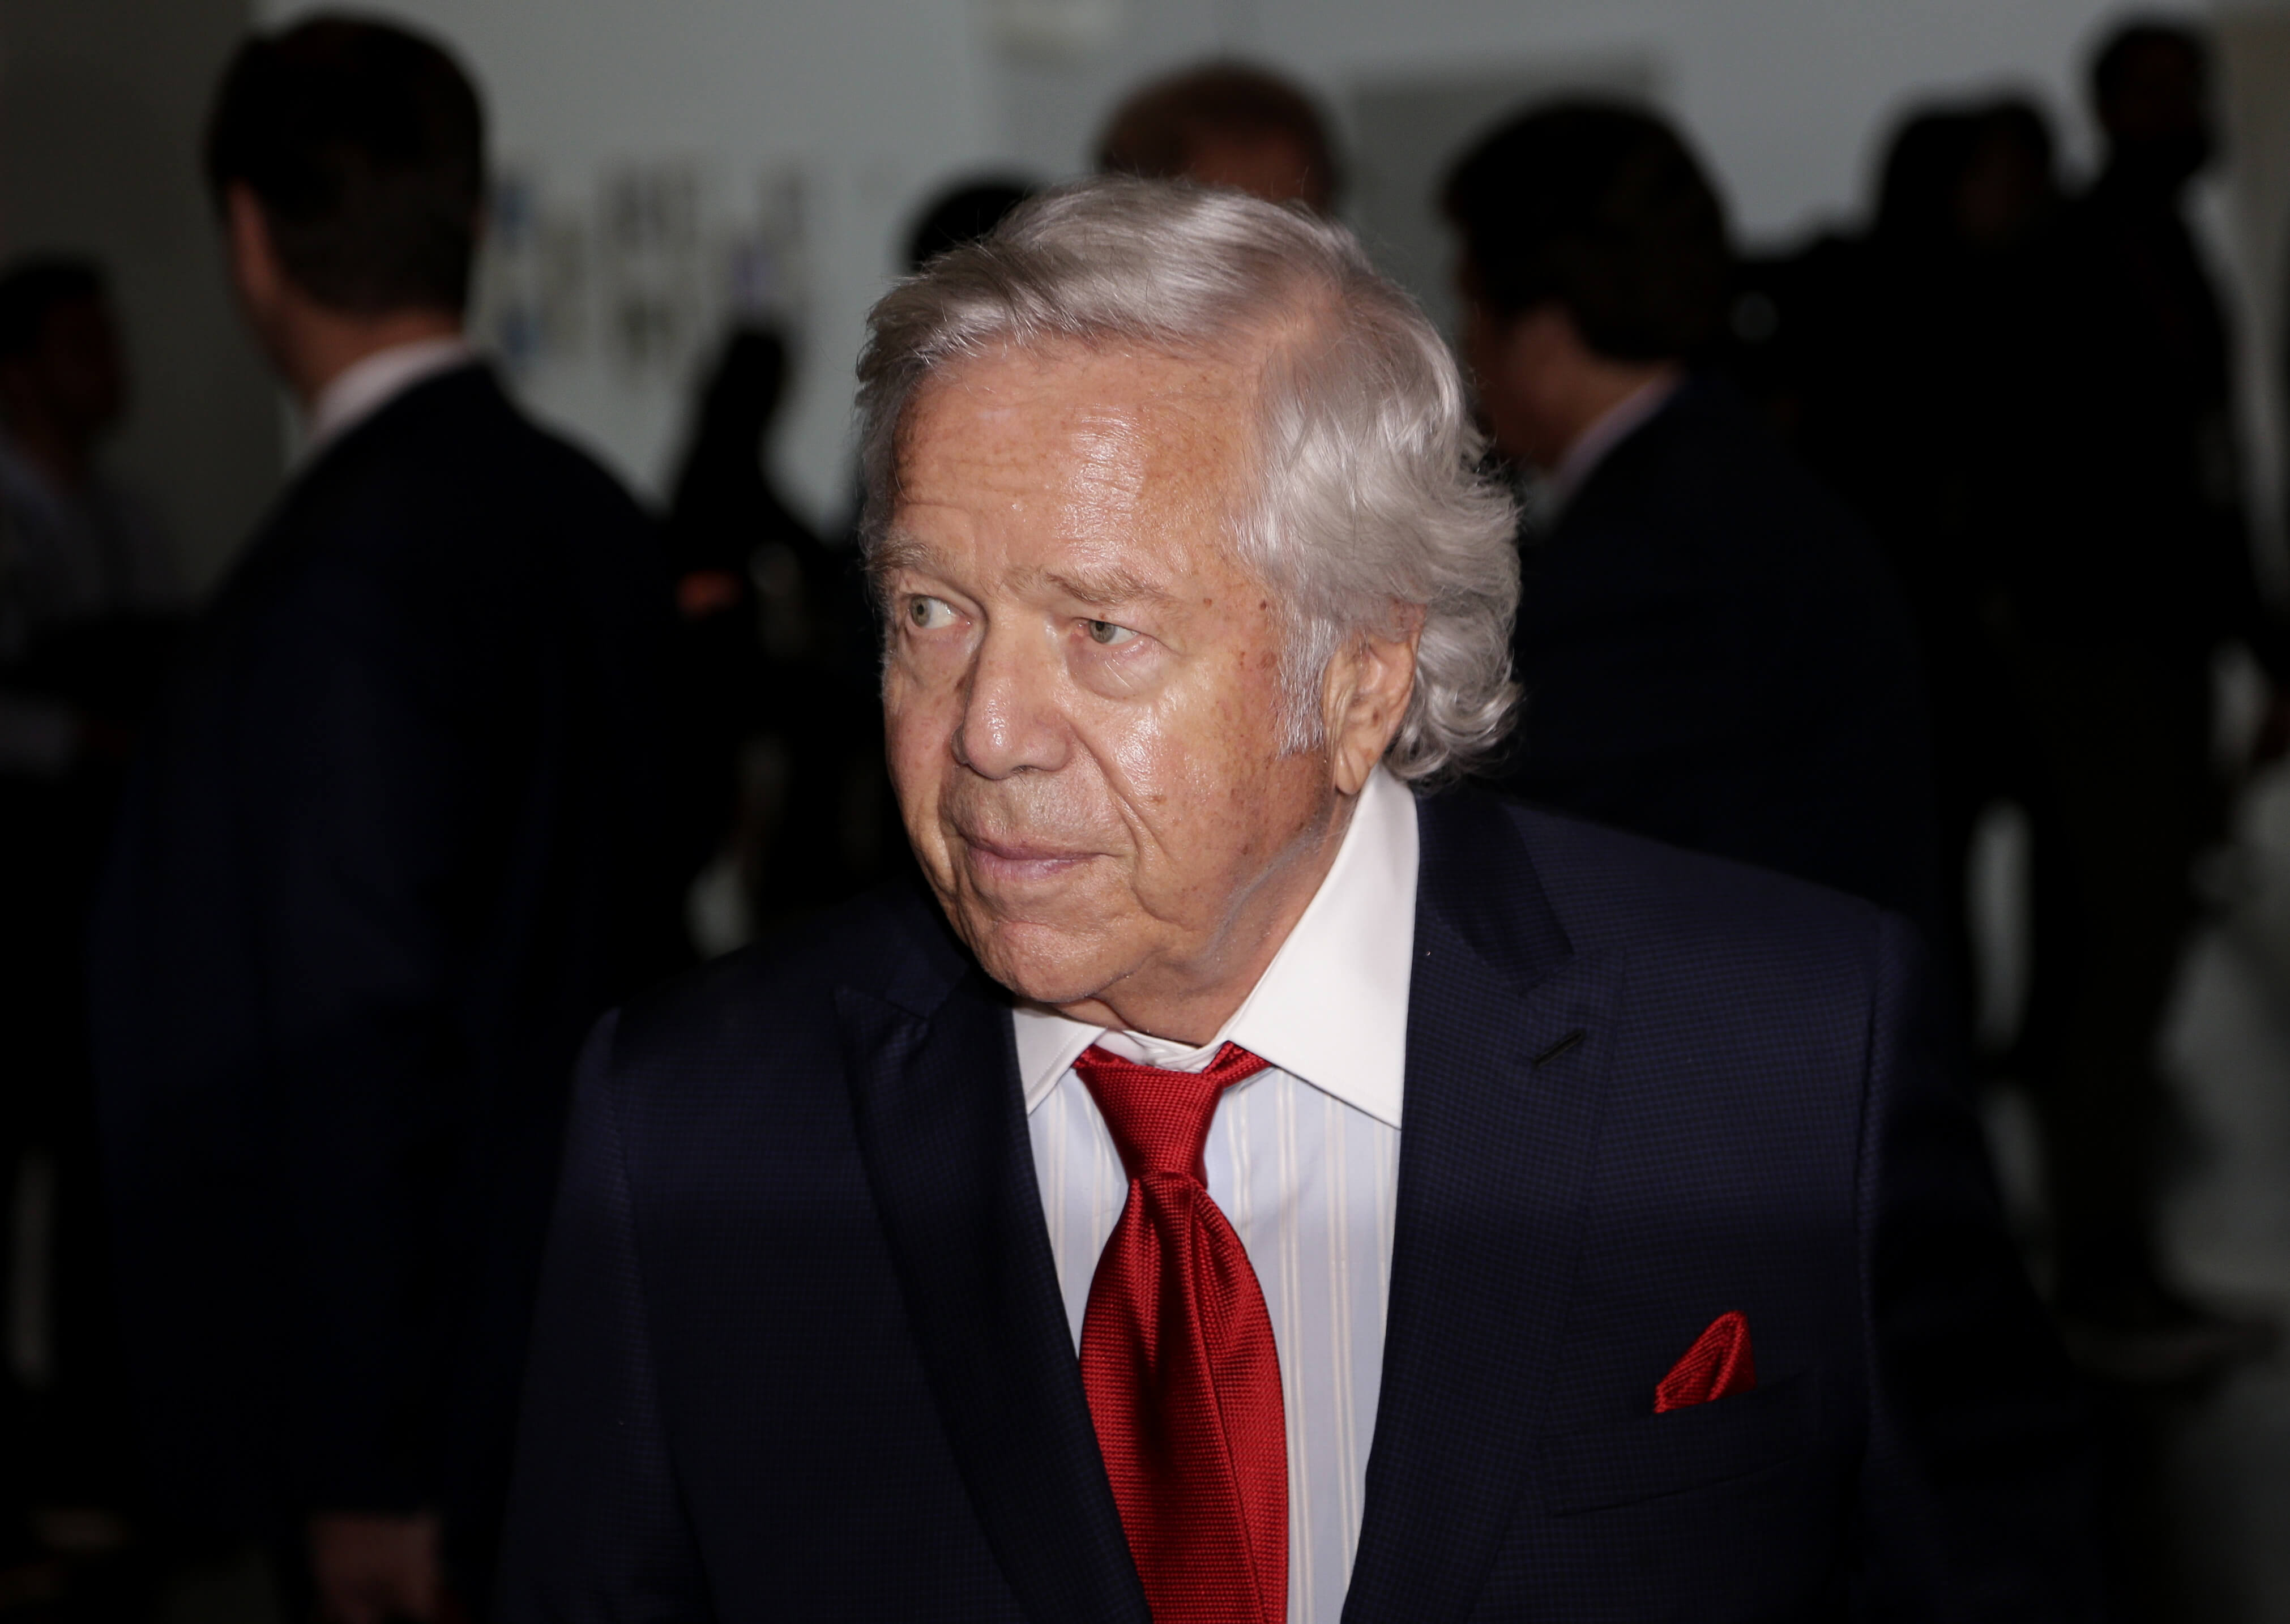 New England Patriots owner Robert Kraft arrives for the NFL fall meetings in New York on Oct. 19.